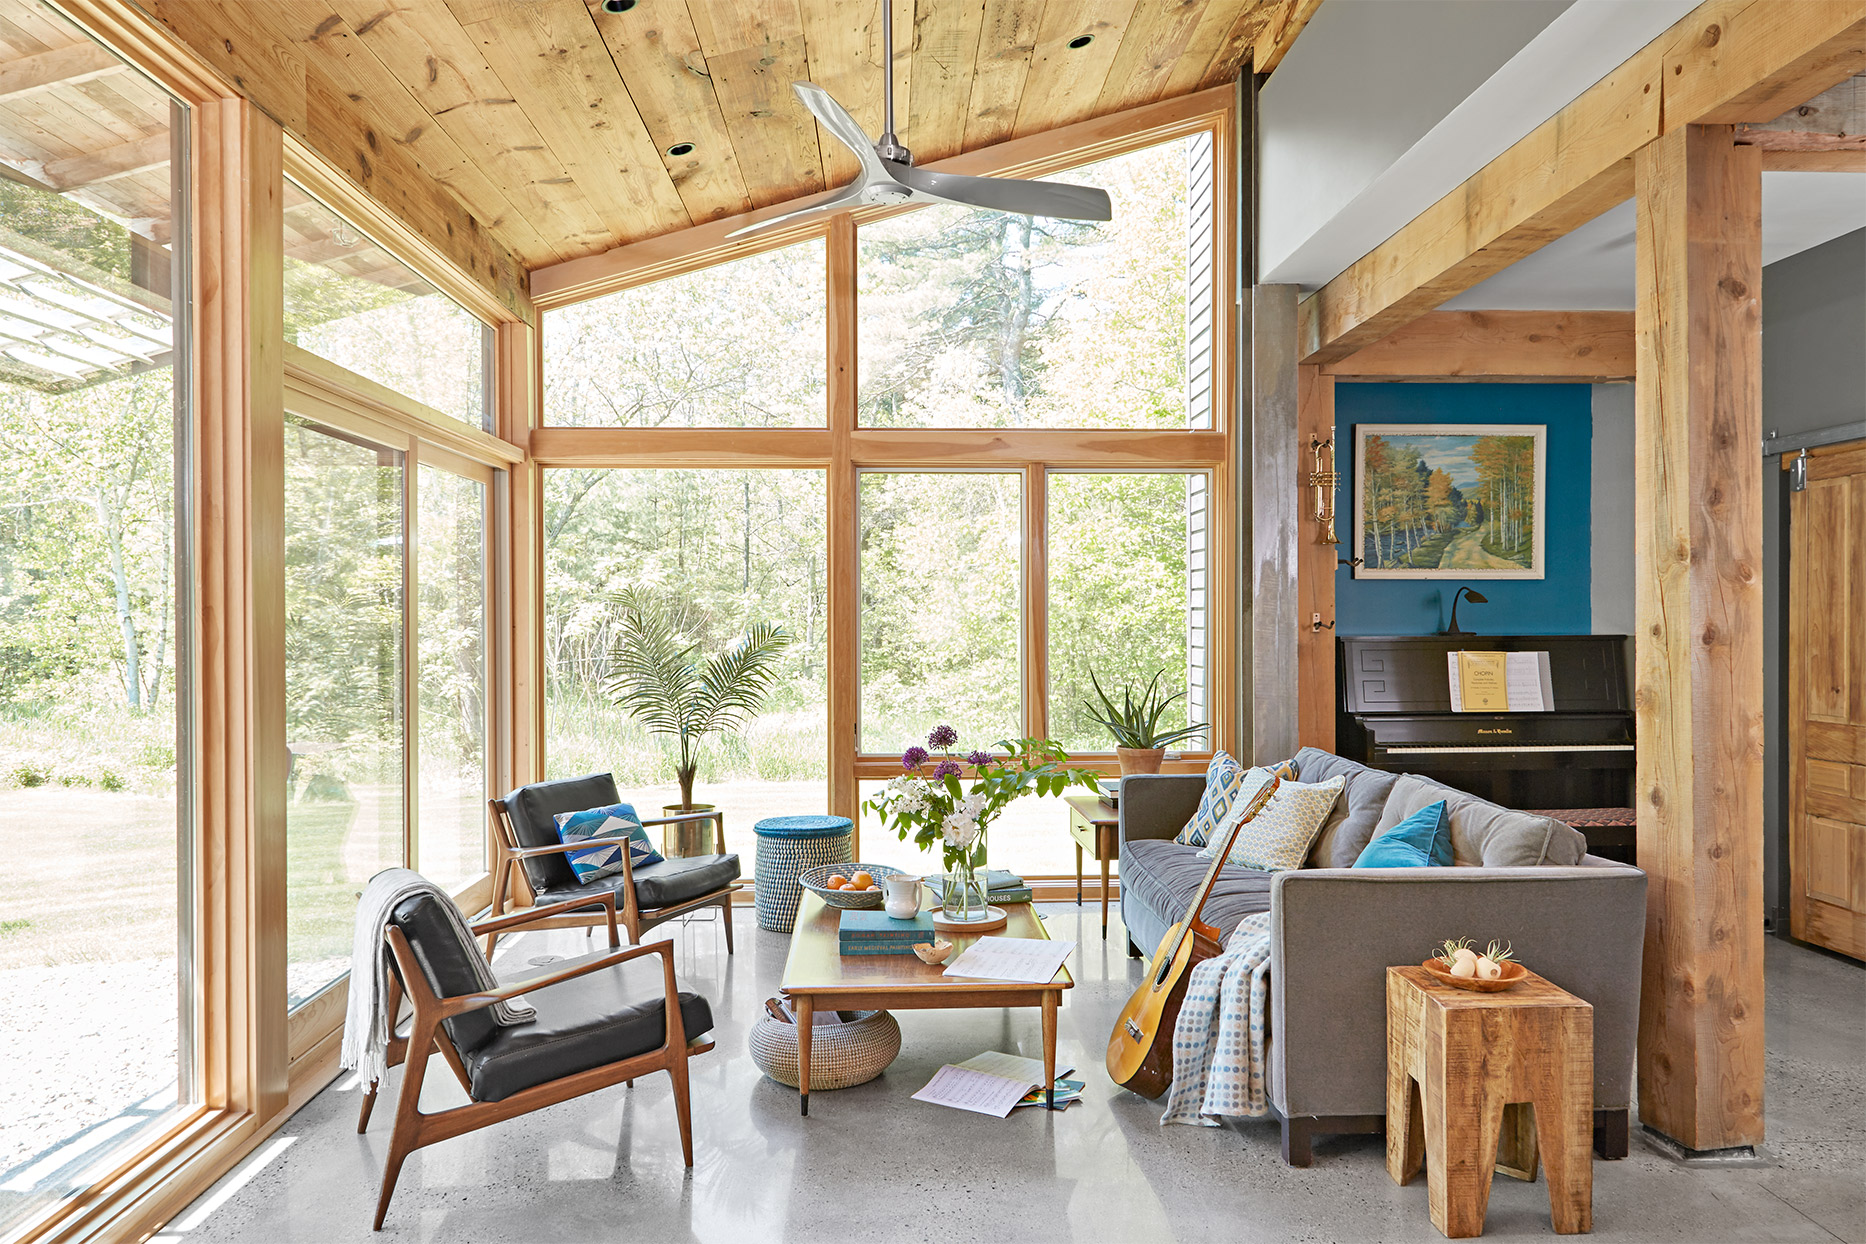 18 sunroom decorating ideas for a